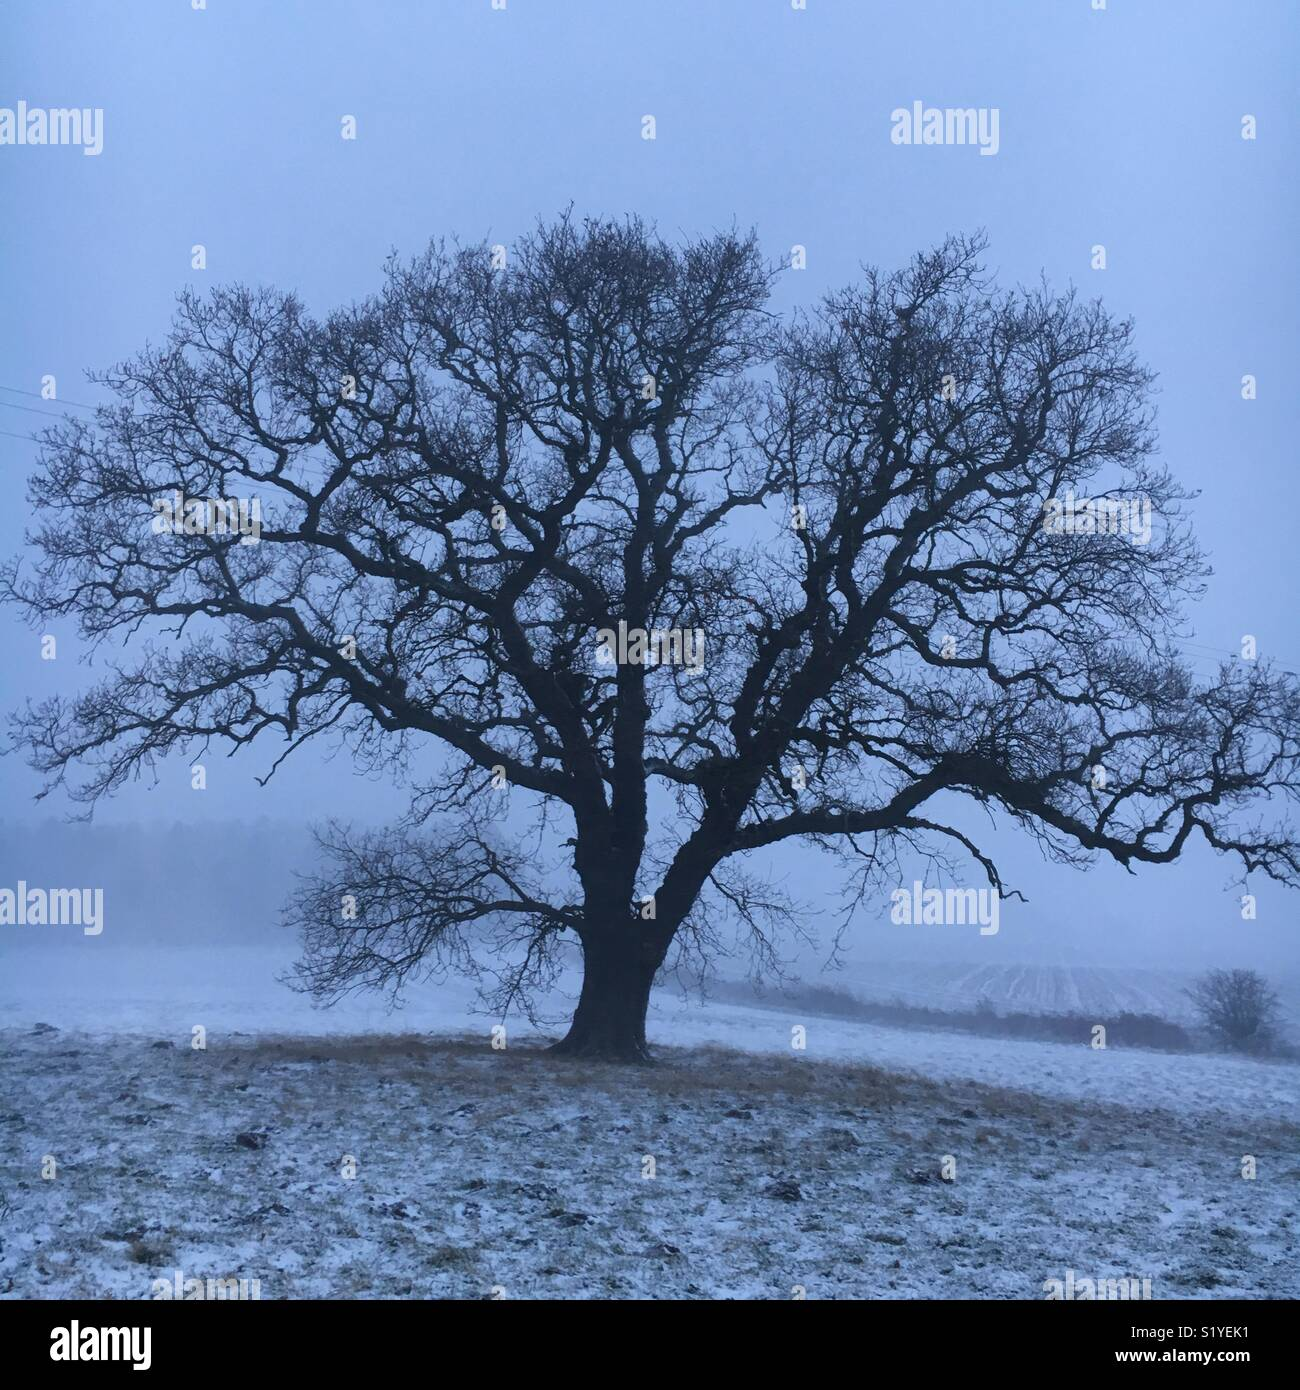 Cold looking landscape with single tree - Stock Image